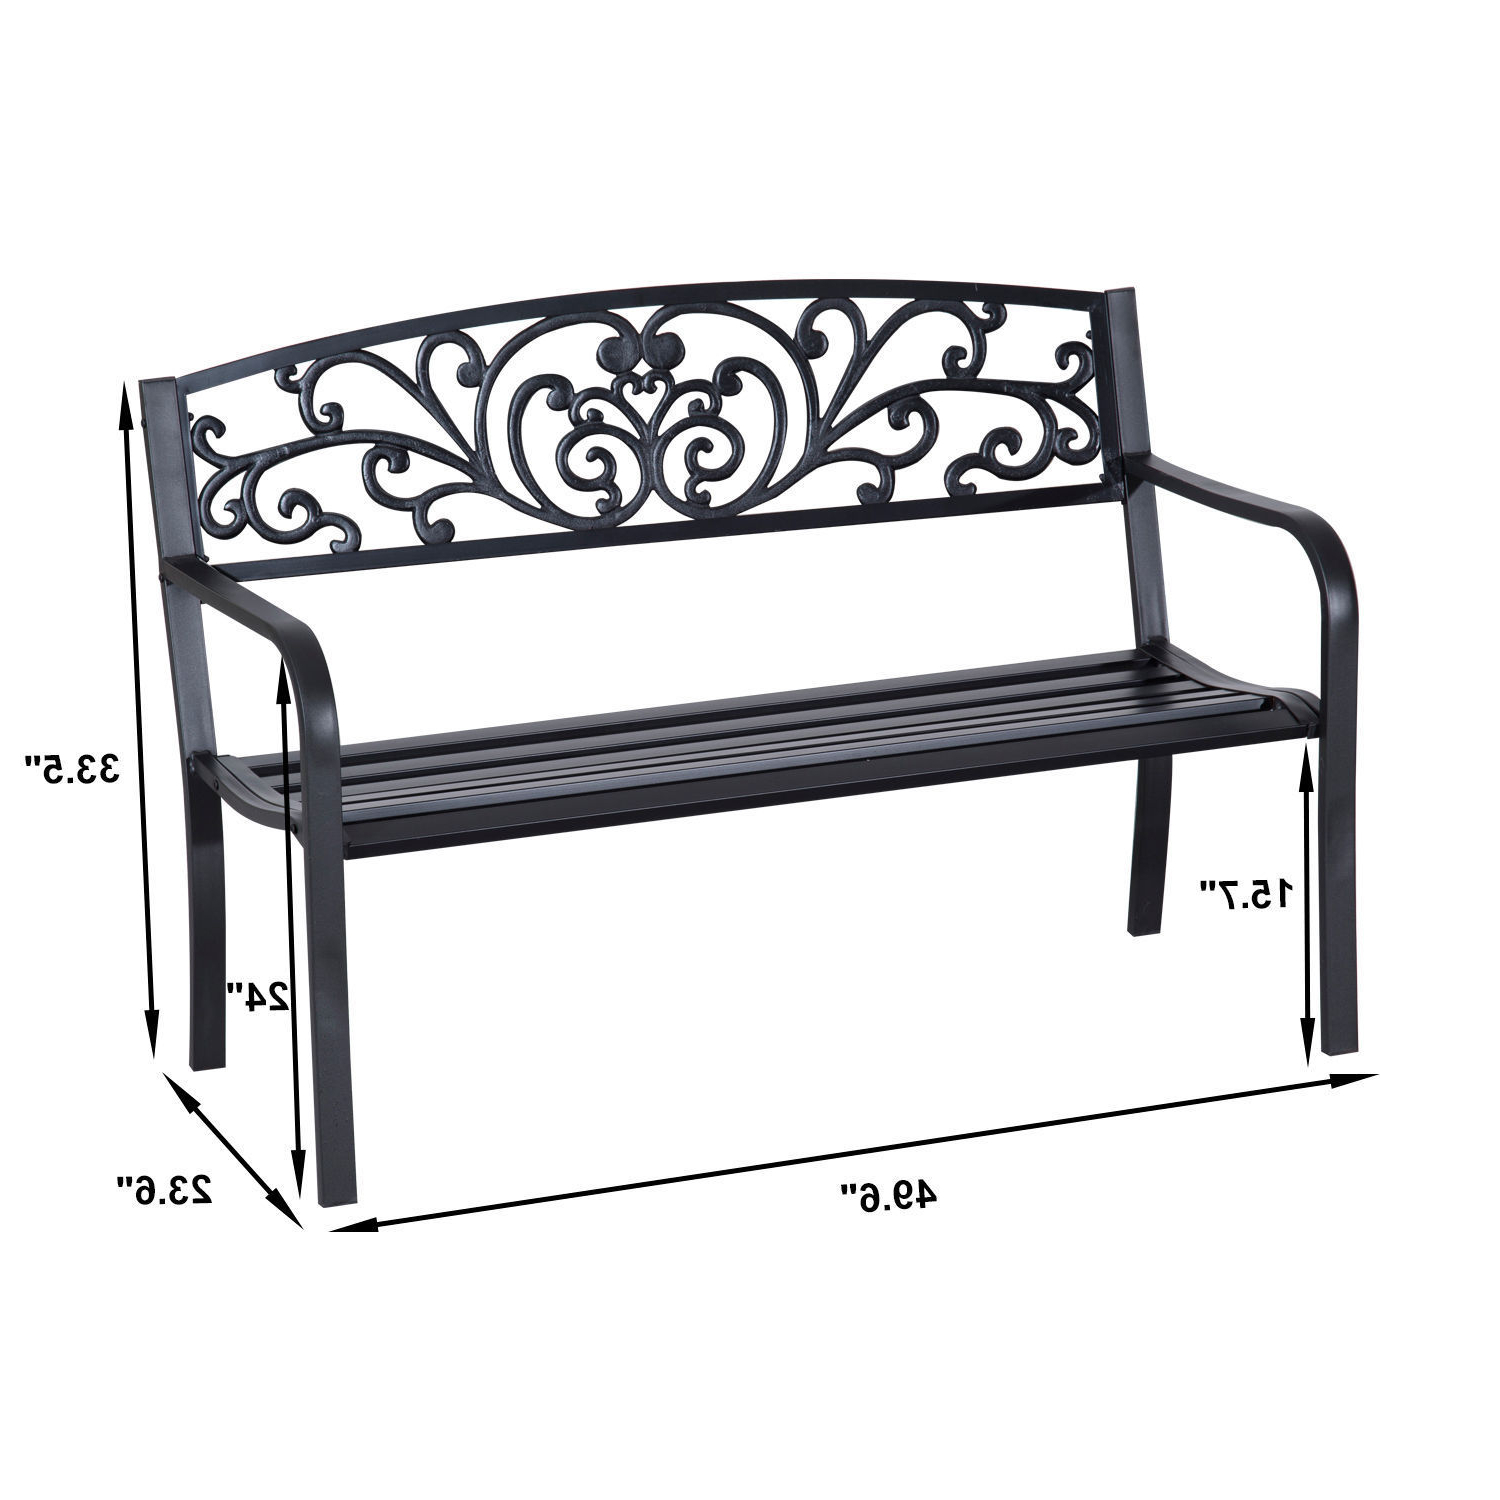 Center Table Double Glider Benches Throughout Most Recently Released Patio Park Garden Bench Porch Path Chair Outdoor Lawn Garden Black 2 Seat (Gallery 28 of 30)